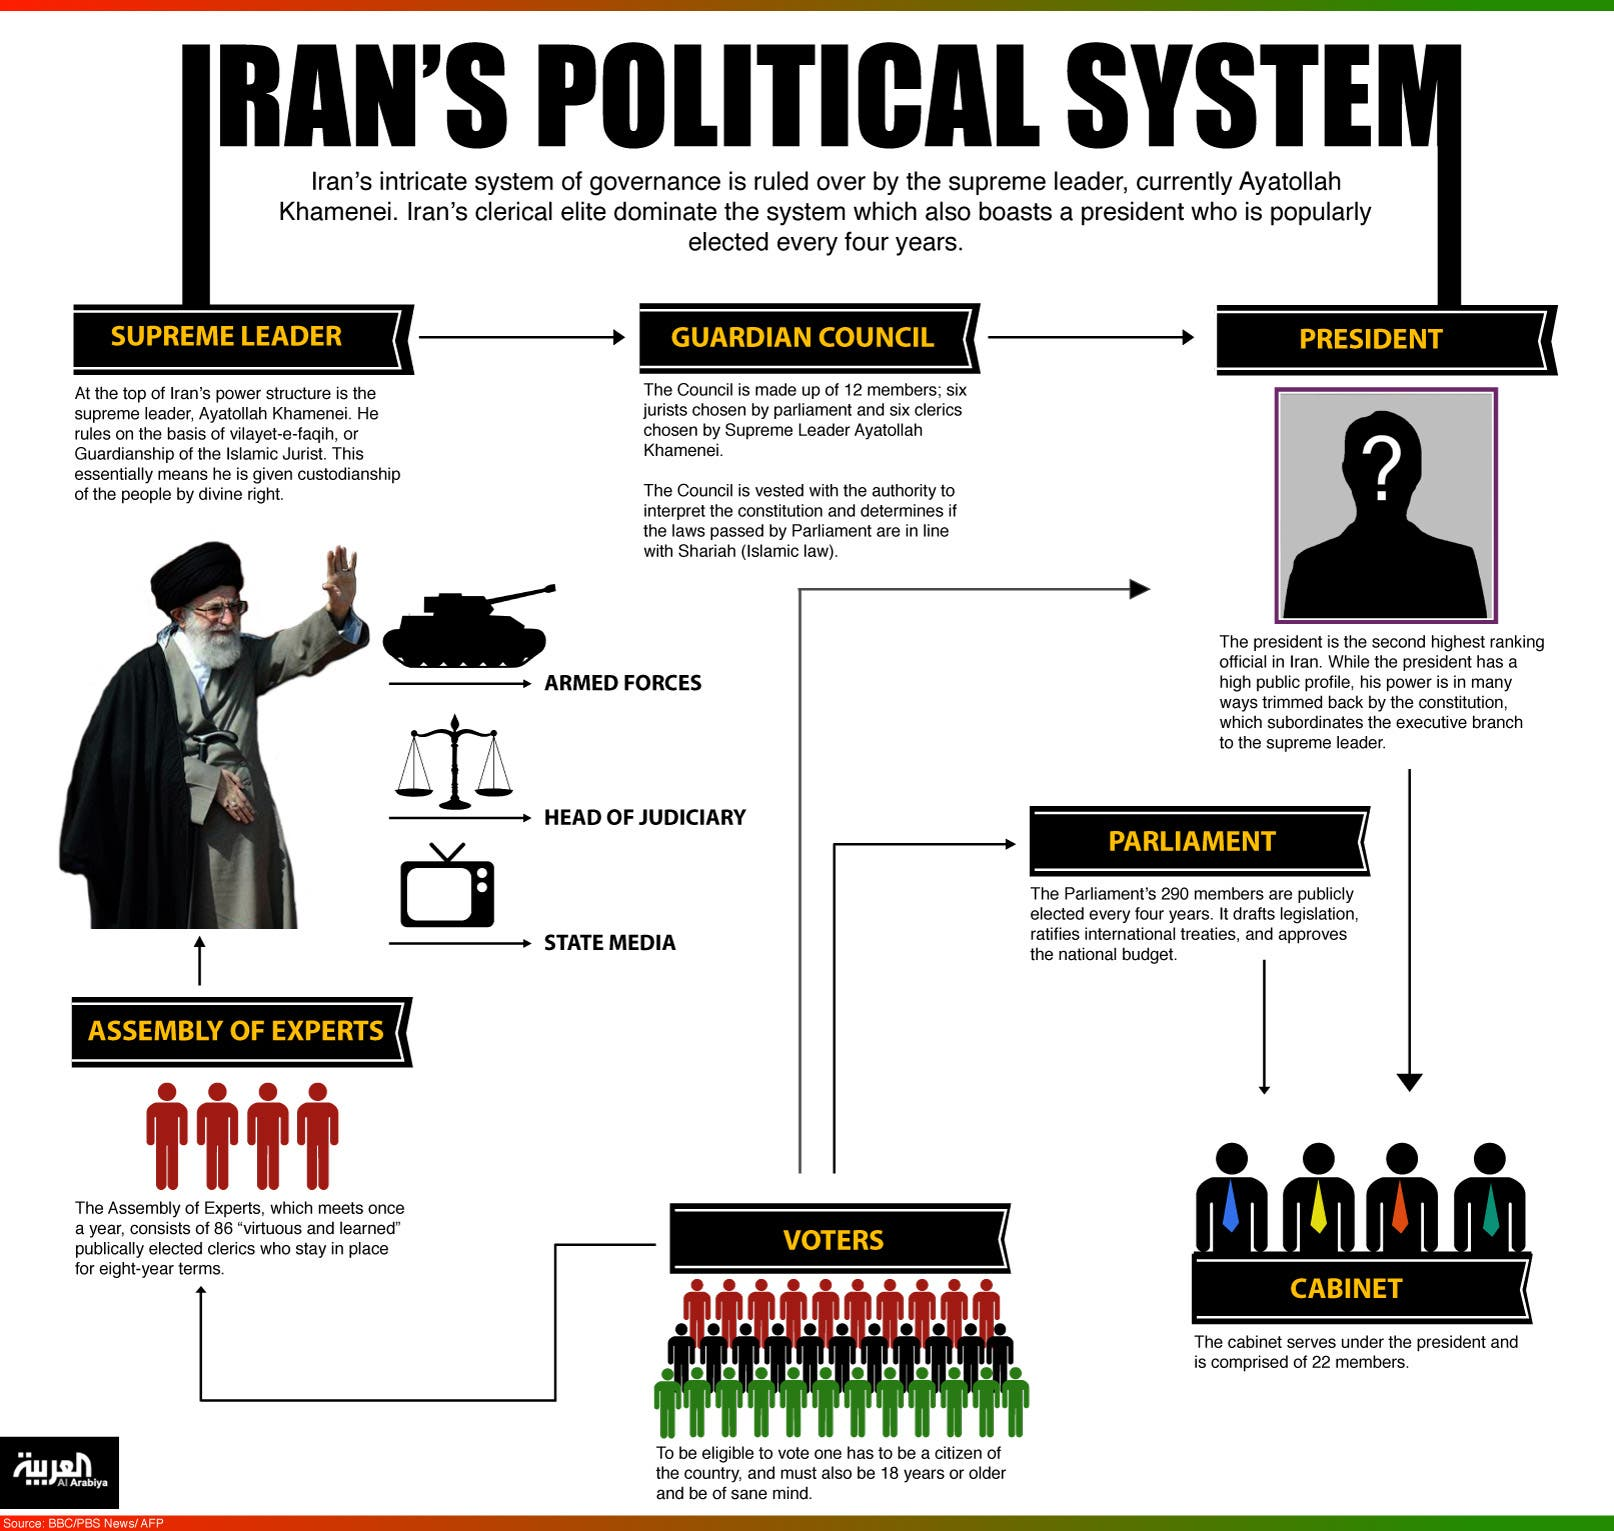 Political systems infographic